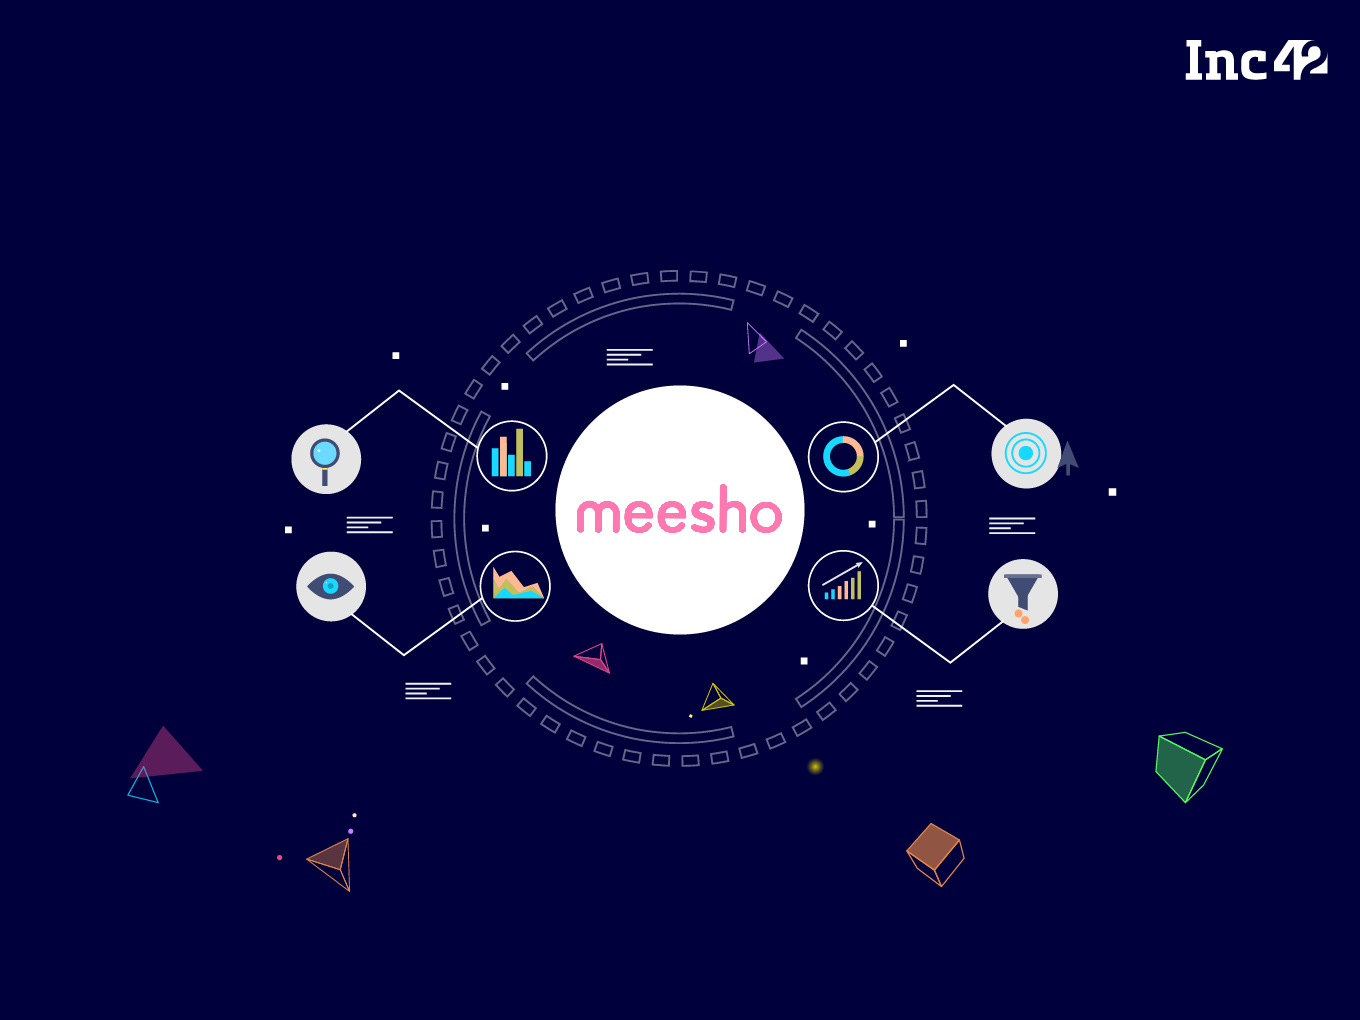 [What The Financials] Meesho's 19X Higher Losses Expose Chinks In Social Commerce Model